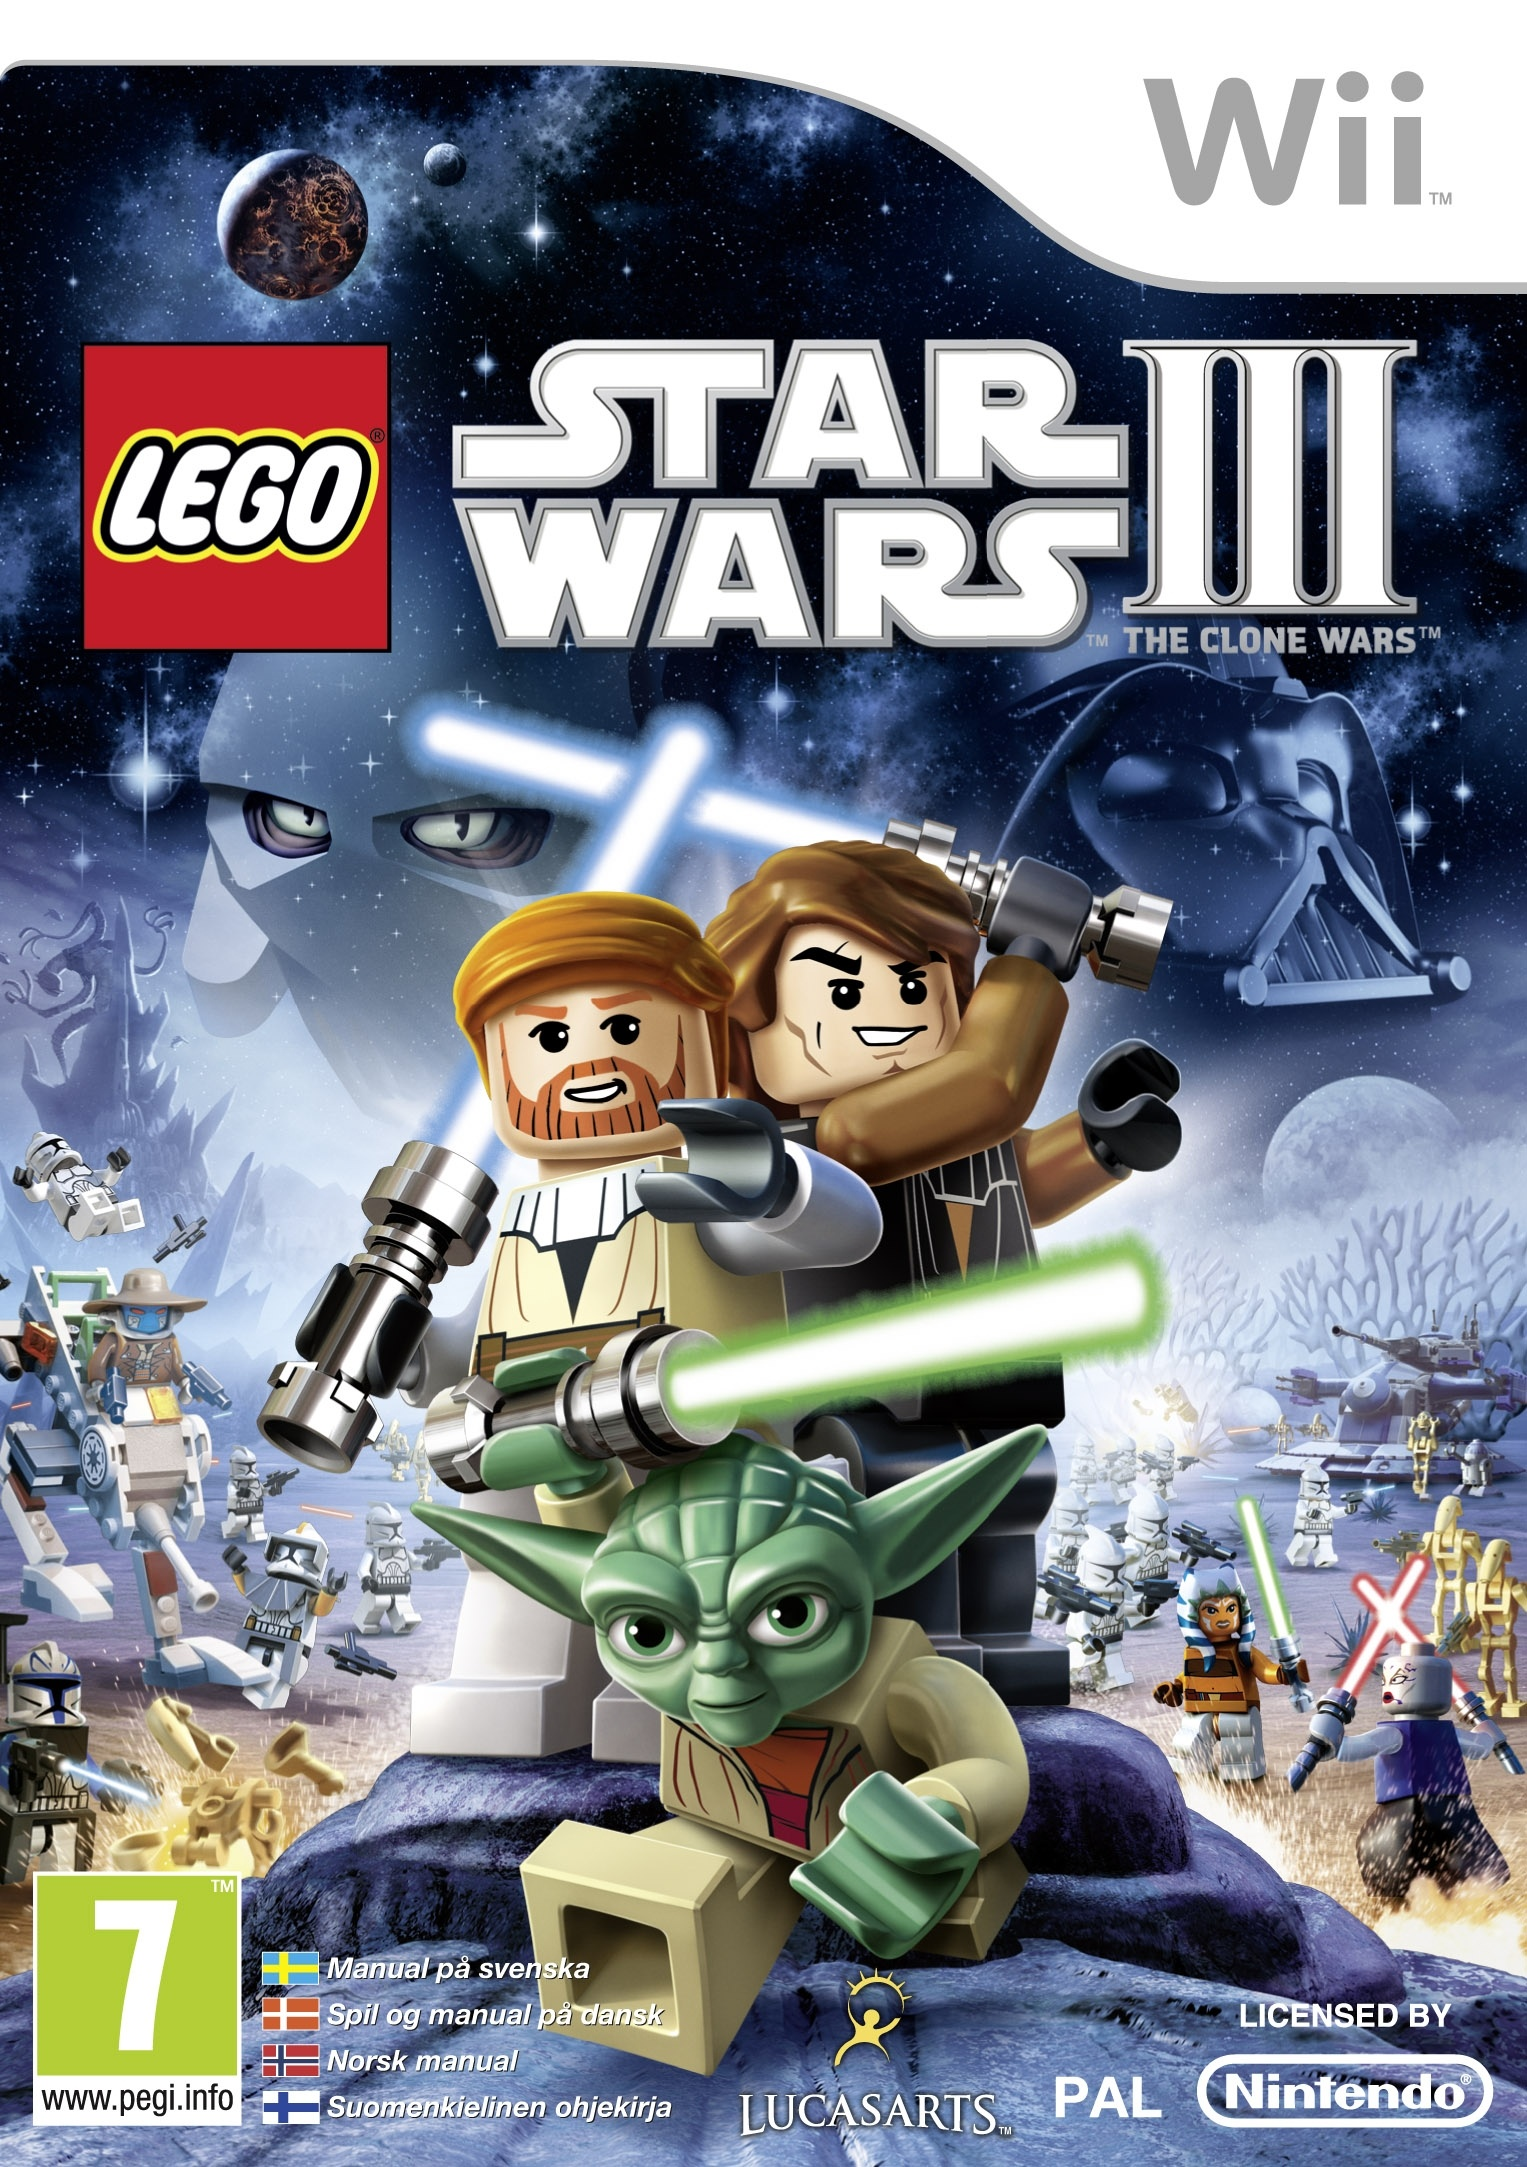 LEGO Star Wars III (3): The Clone Wars Nintendo Wii video game - eveikals.lv